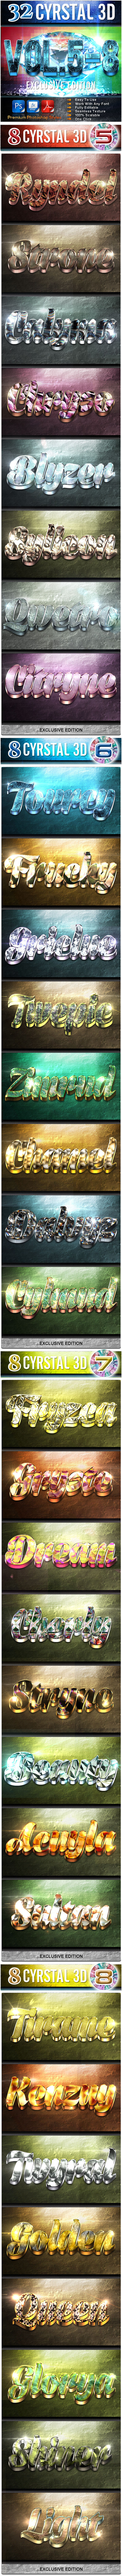 GraphicRiver 32 Cyrstal 3D Bundle Vol.5-8 9639753